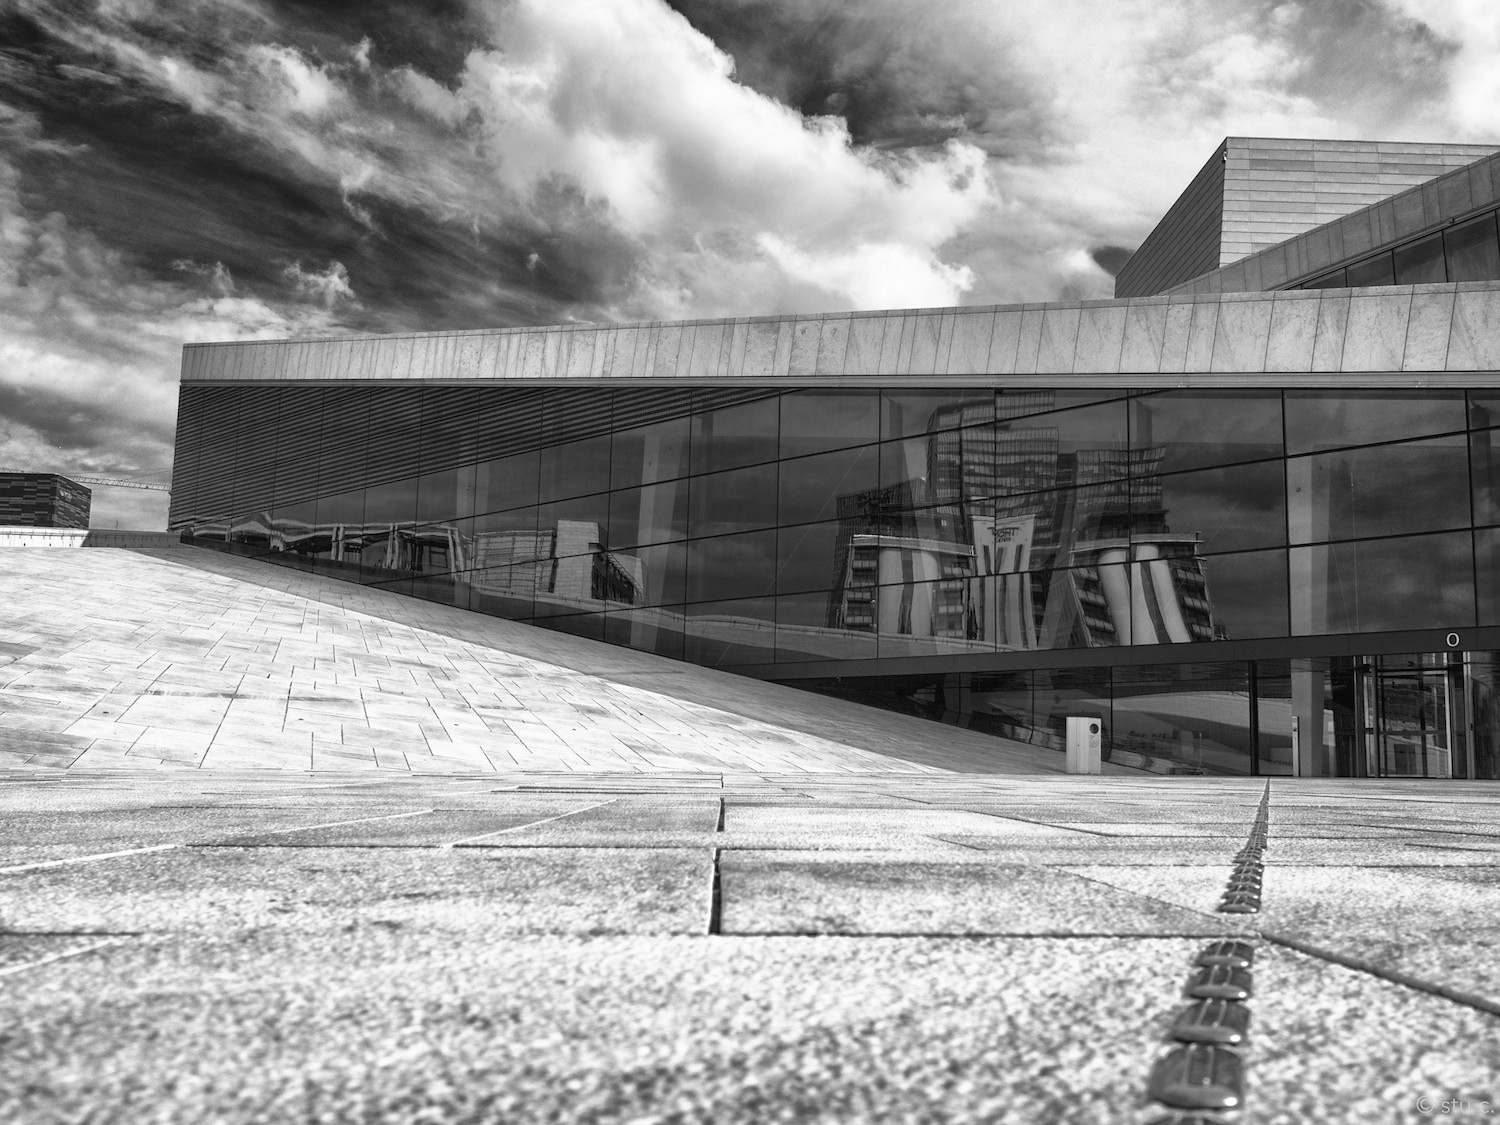 Dramatic lines & angles lead the eye on a visual smorgasbord that's a special feast for photographers